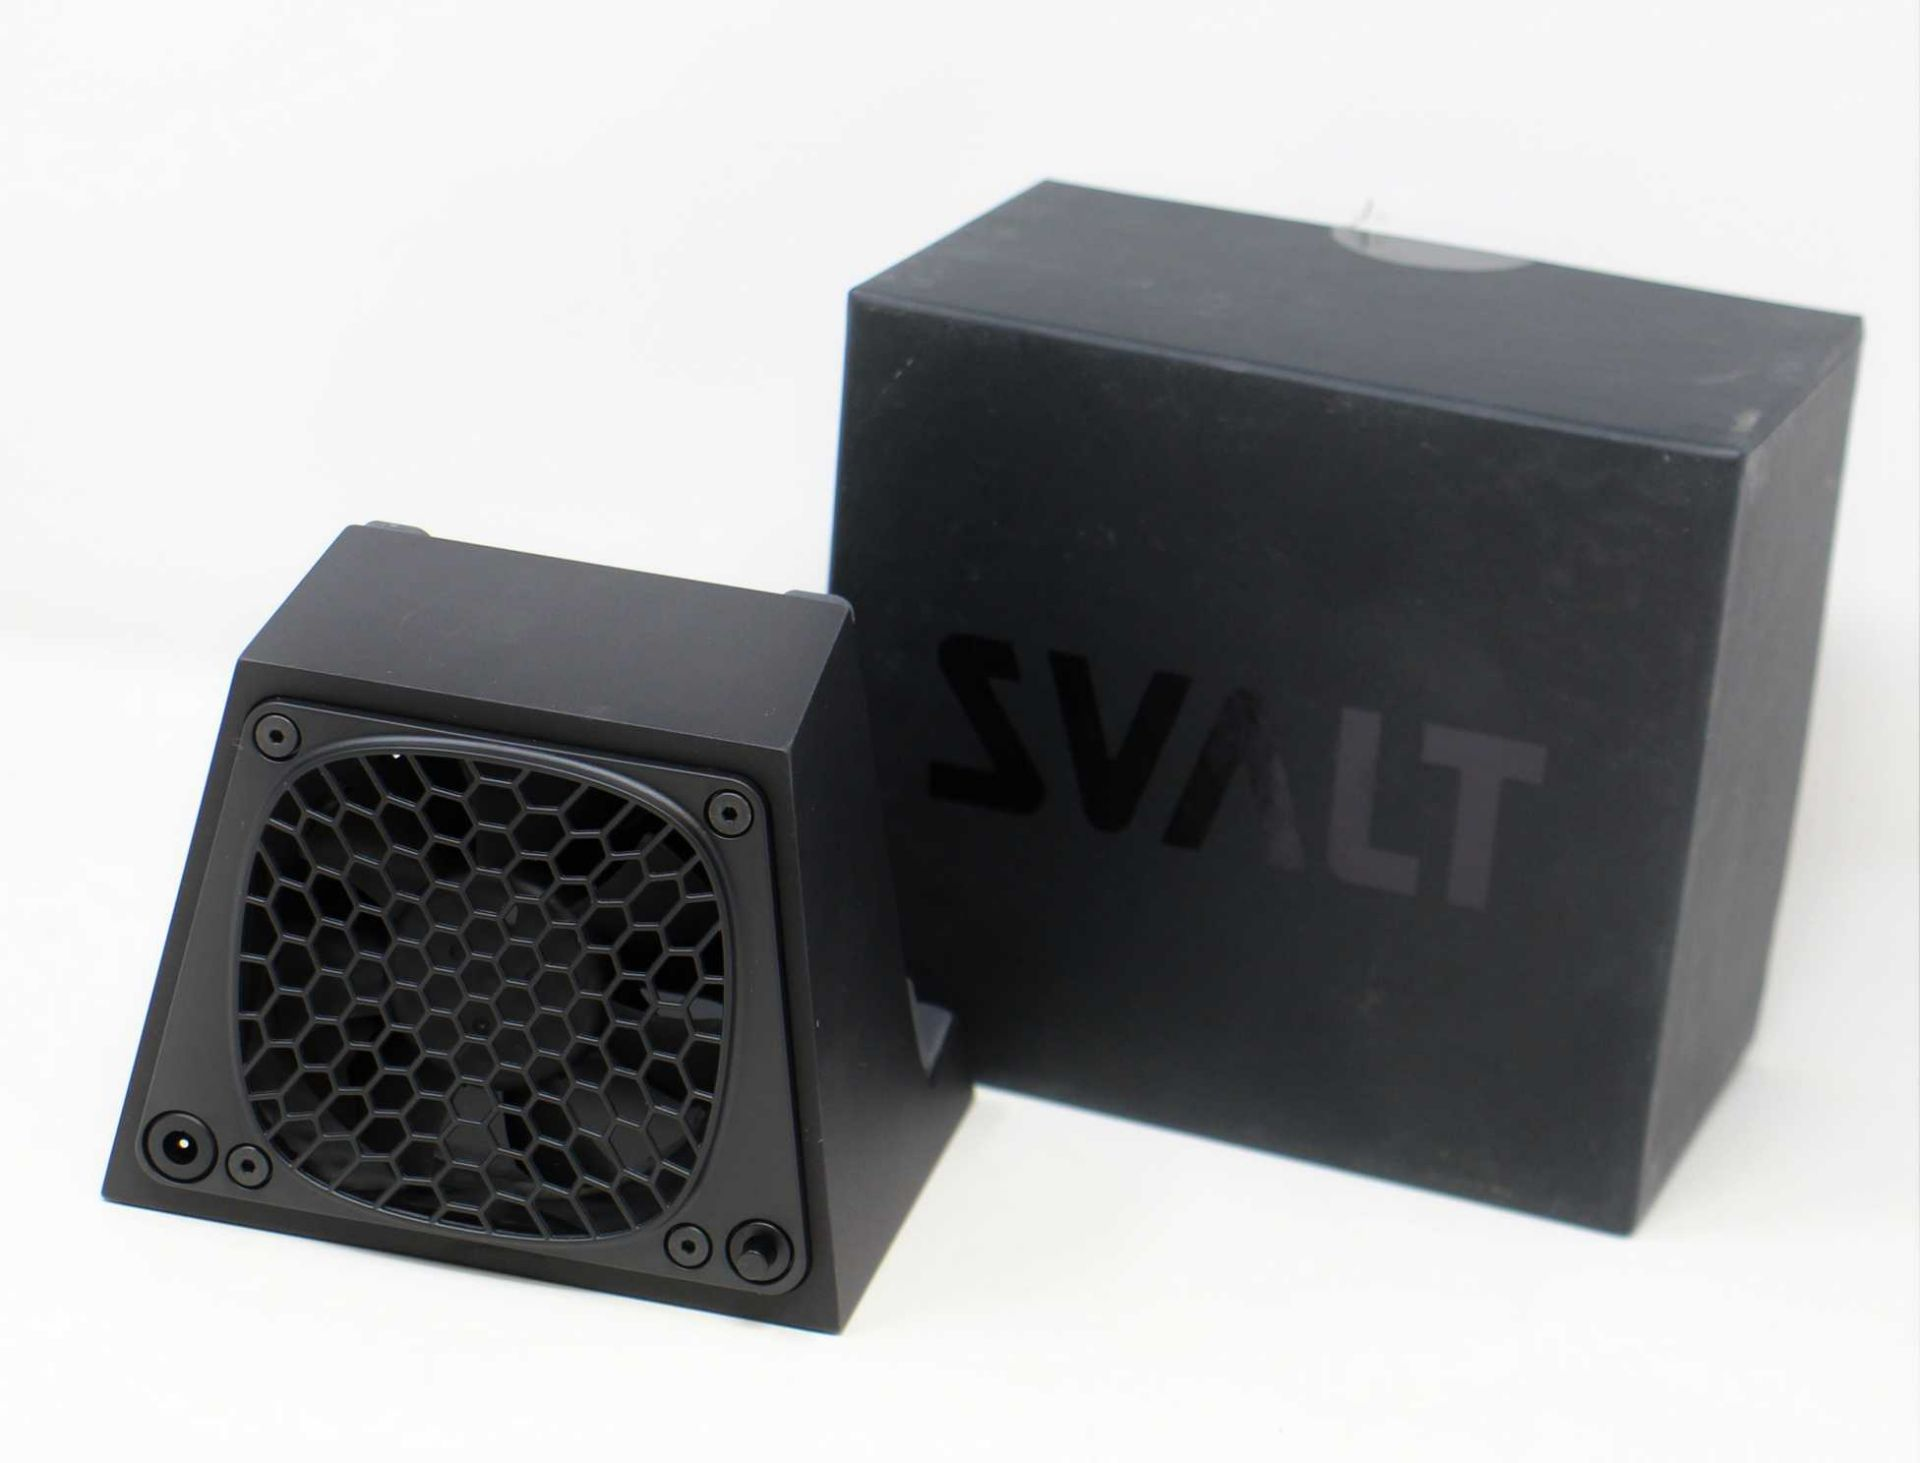 A pre-owned SVALT D2 Pro Cooling Dock for Apple Retina MacBook Pro and MacBook Air (Boxed with power